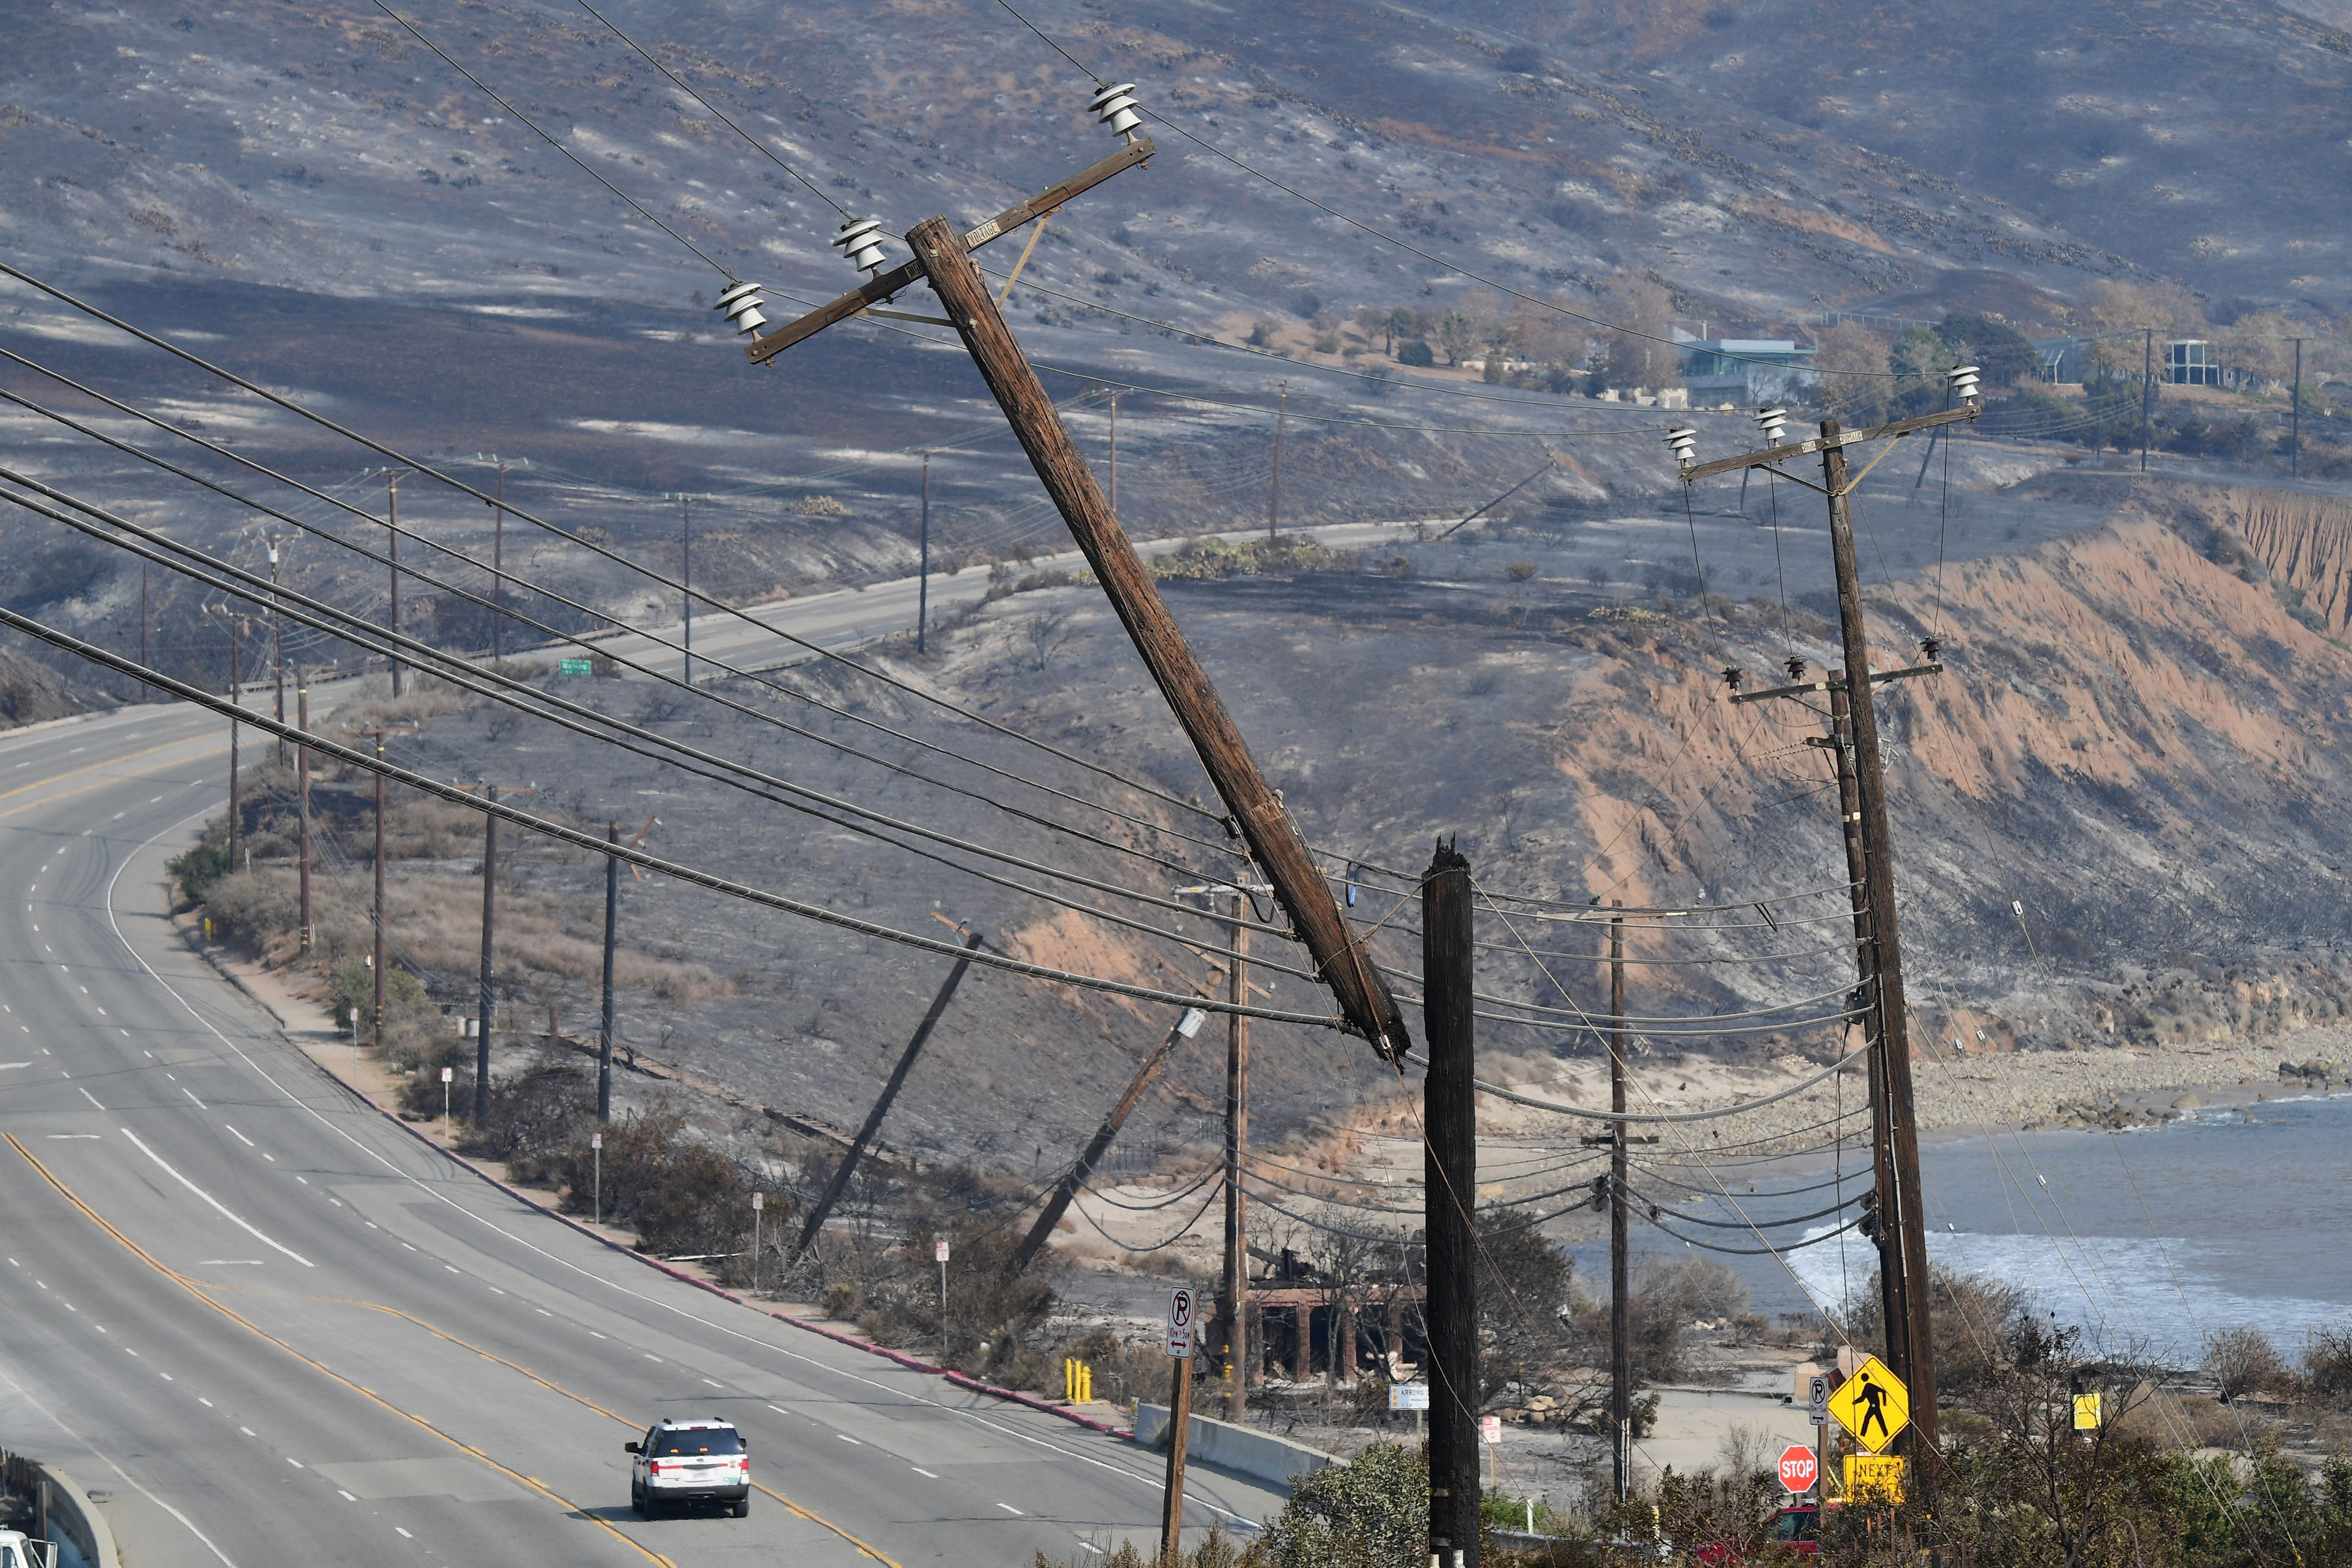 California's Largest Energy Utility Is Shutting Off Power Across the State